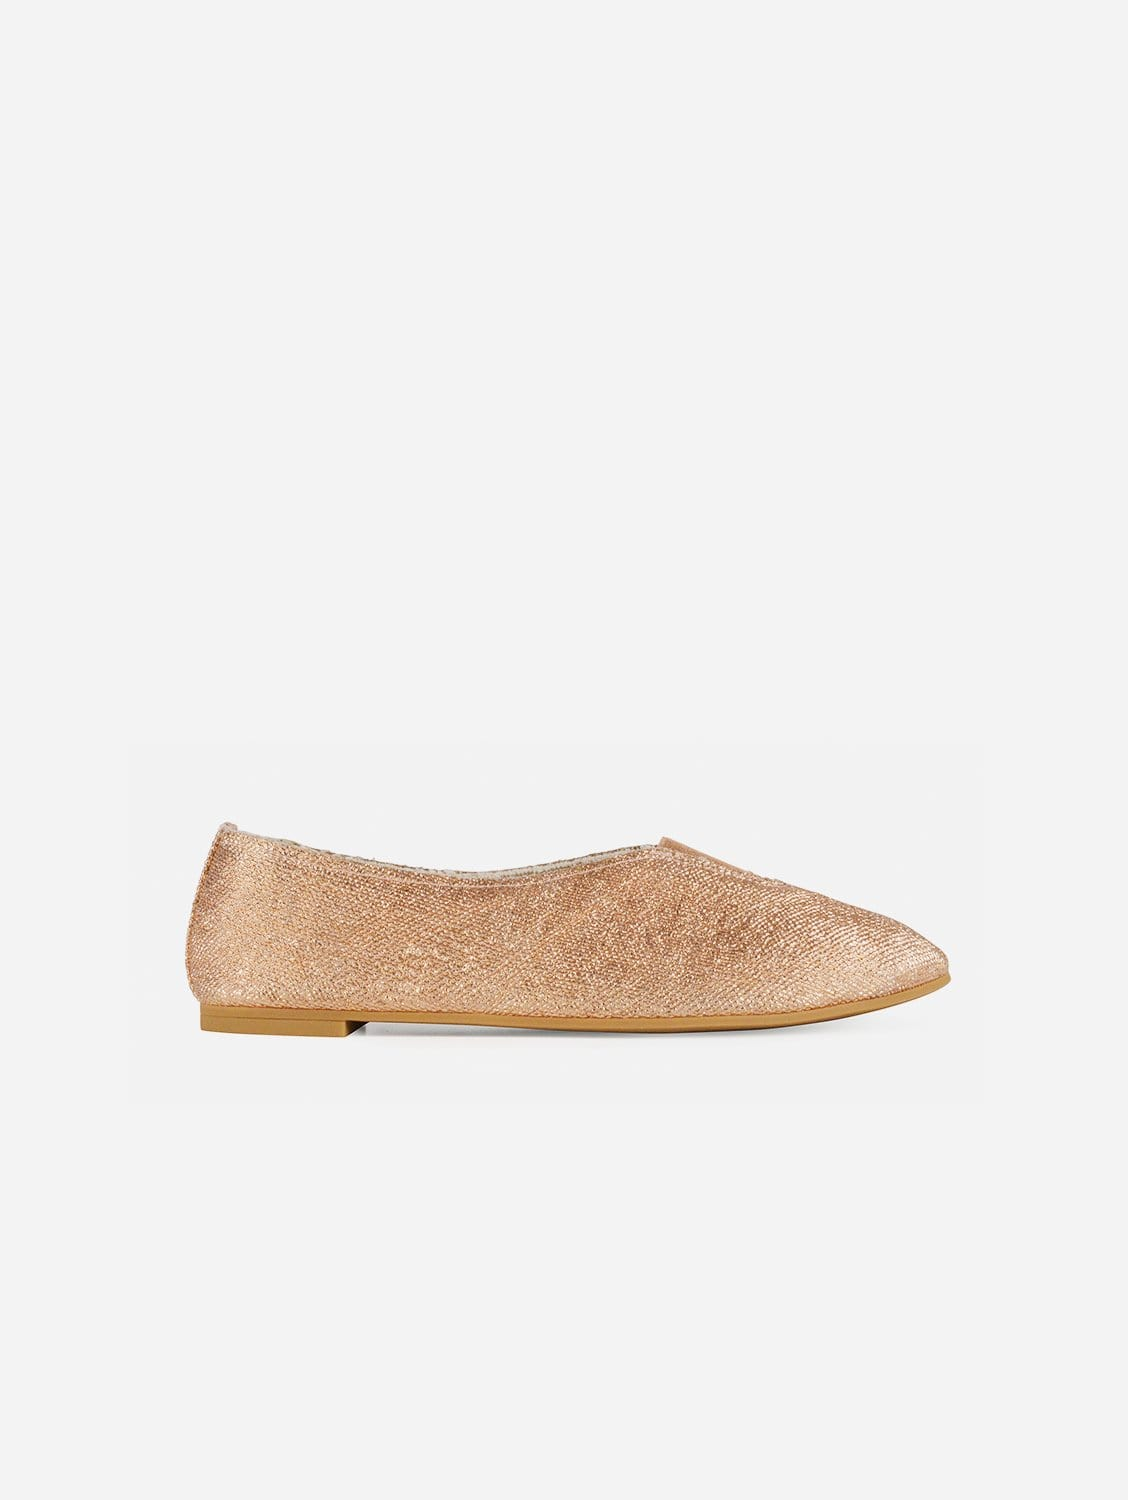 Rhythmic Vegan Ballet Flats | Copper Linen Canvas